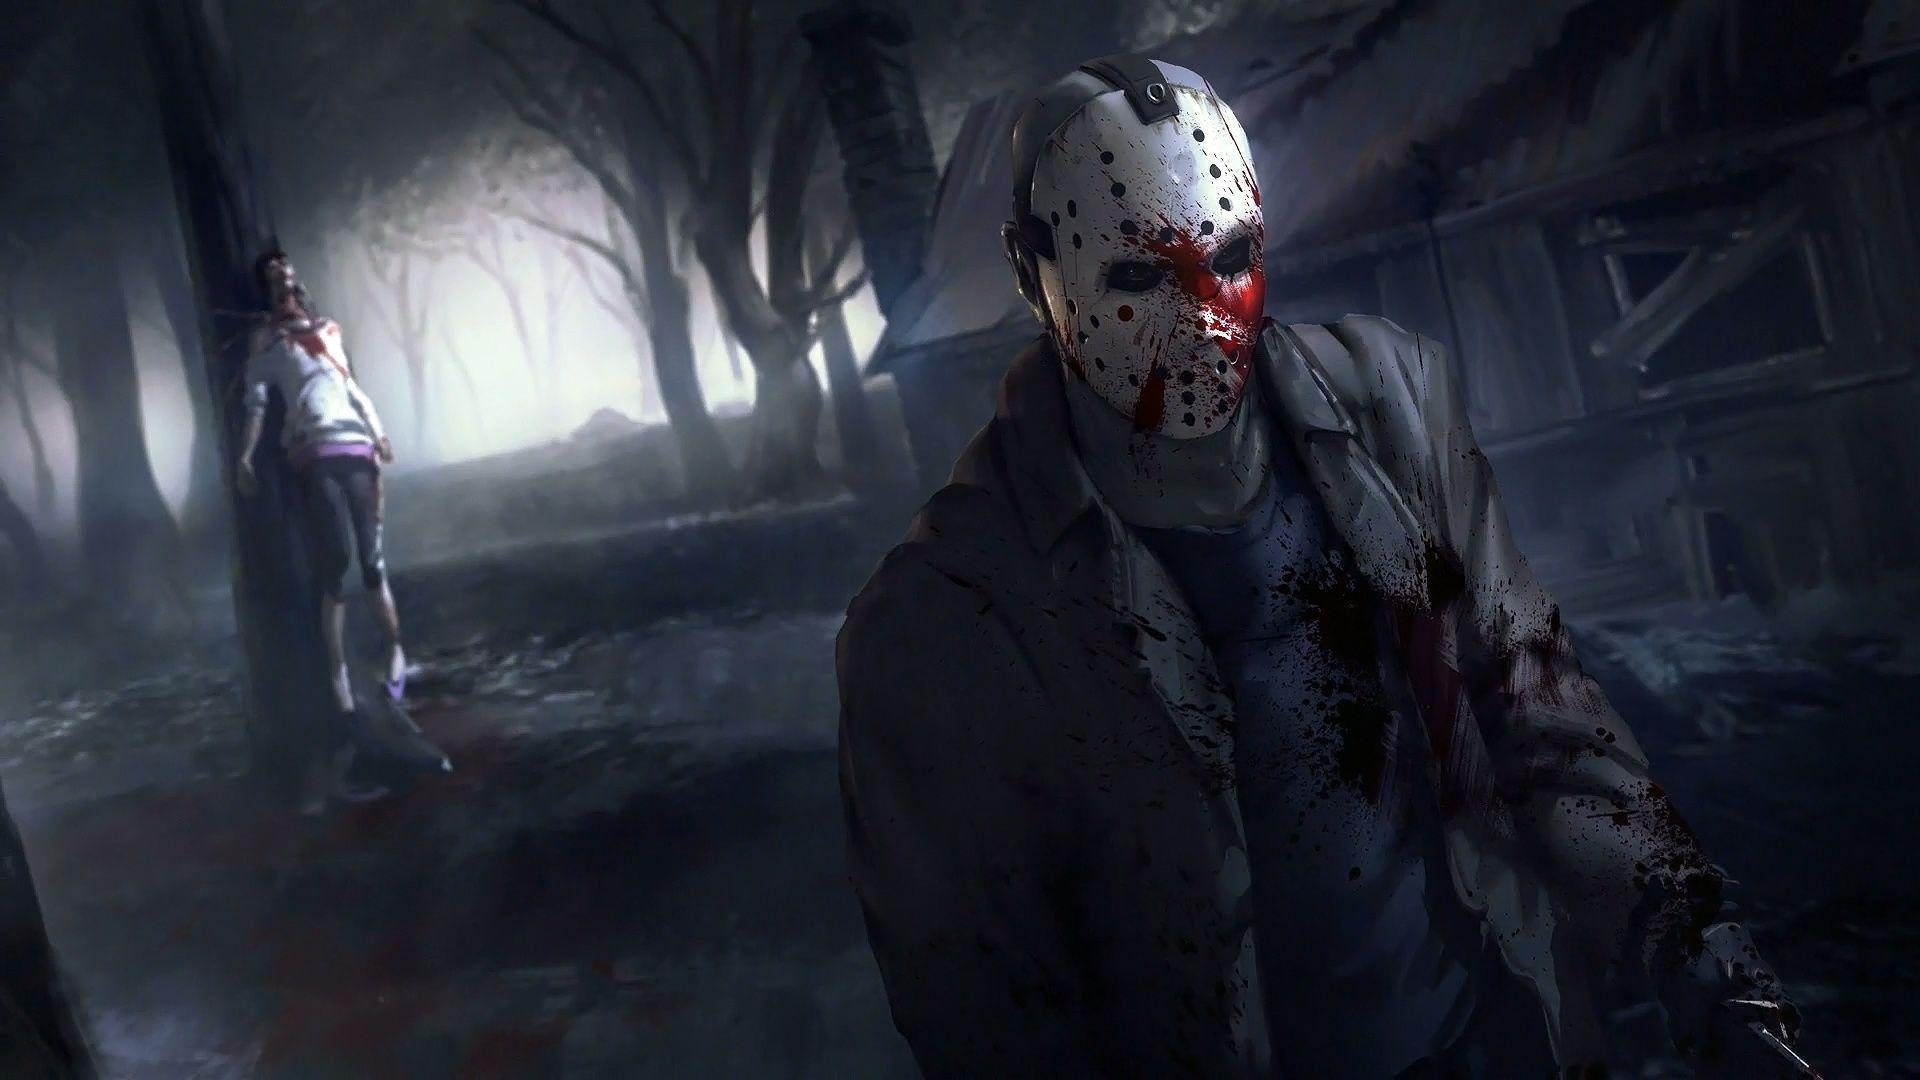 Jason Voorhees Hd Wallpapers Wallpaper Cave